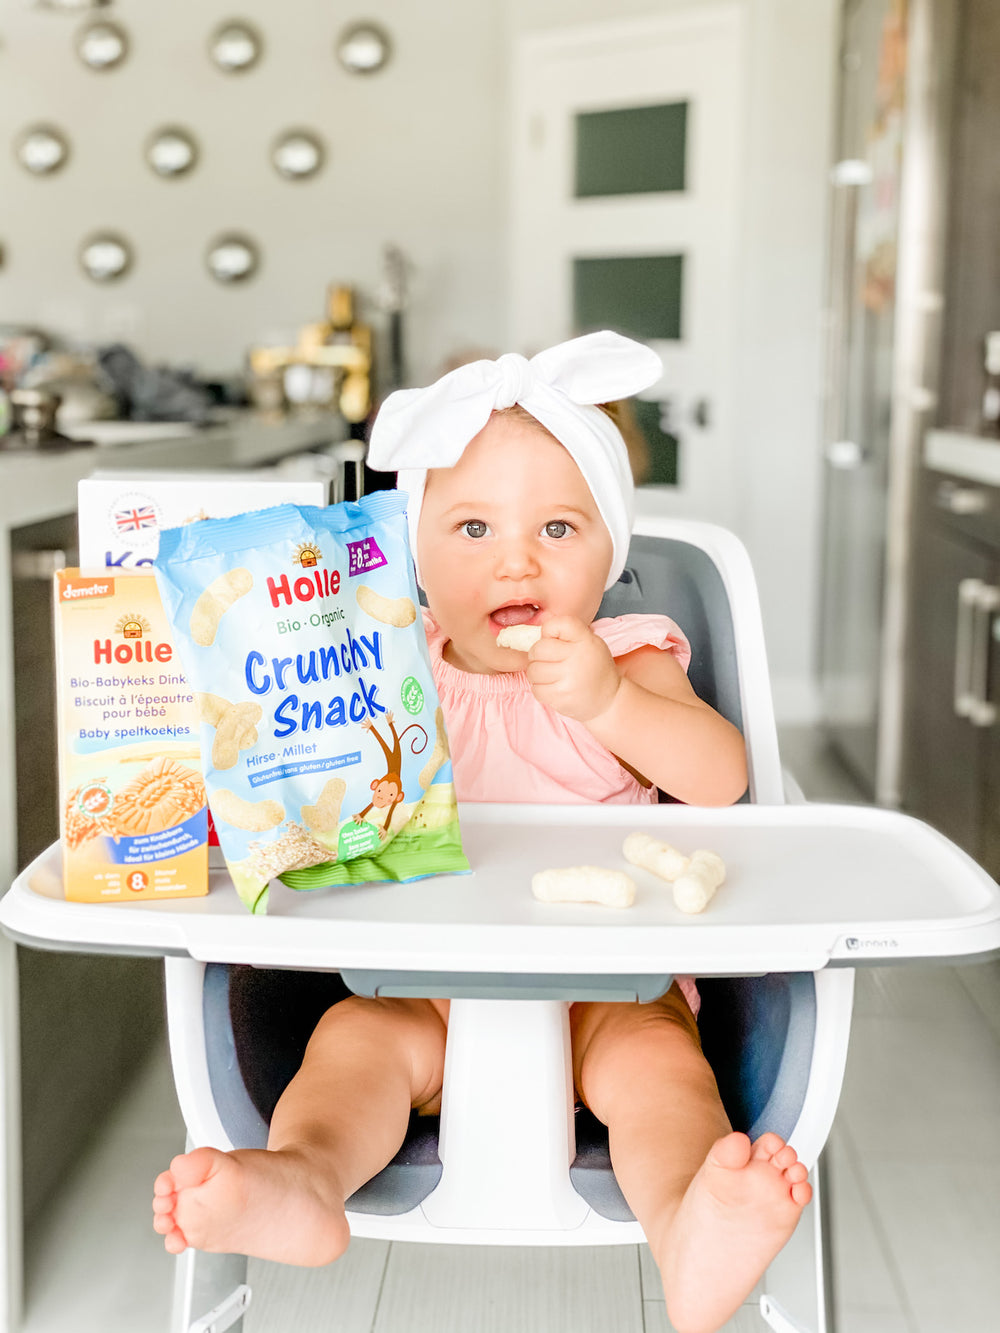 Introducing Solids: When to Start and What to Start With